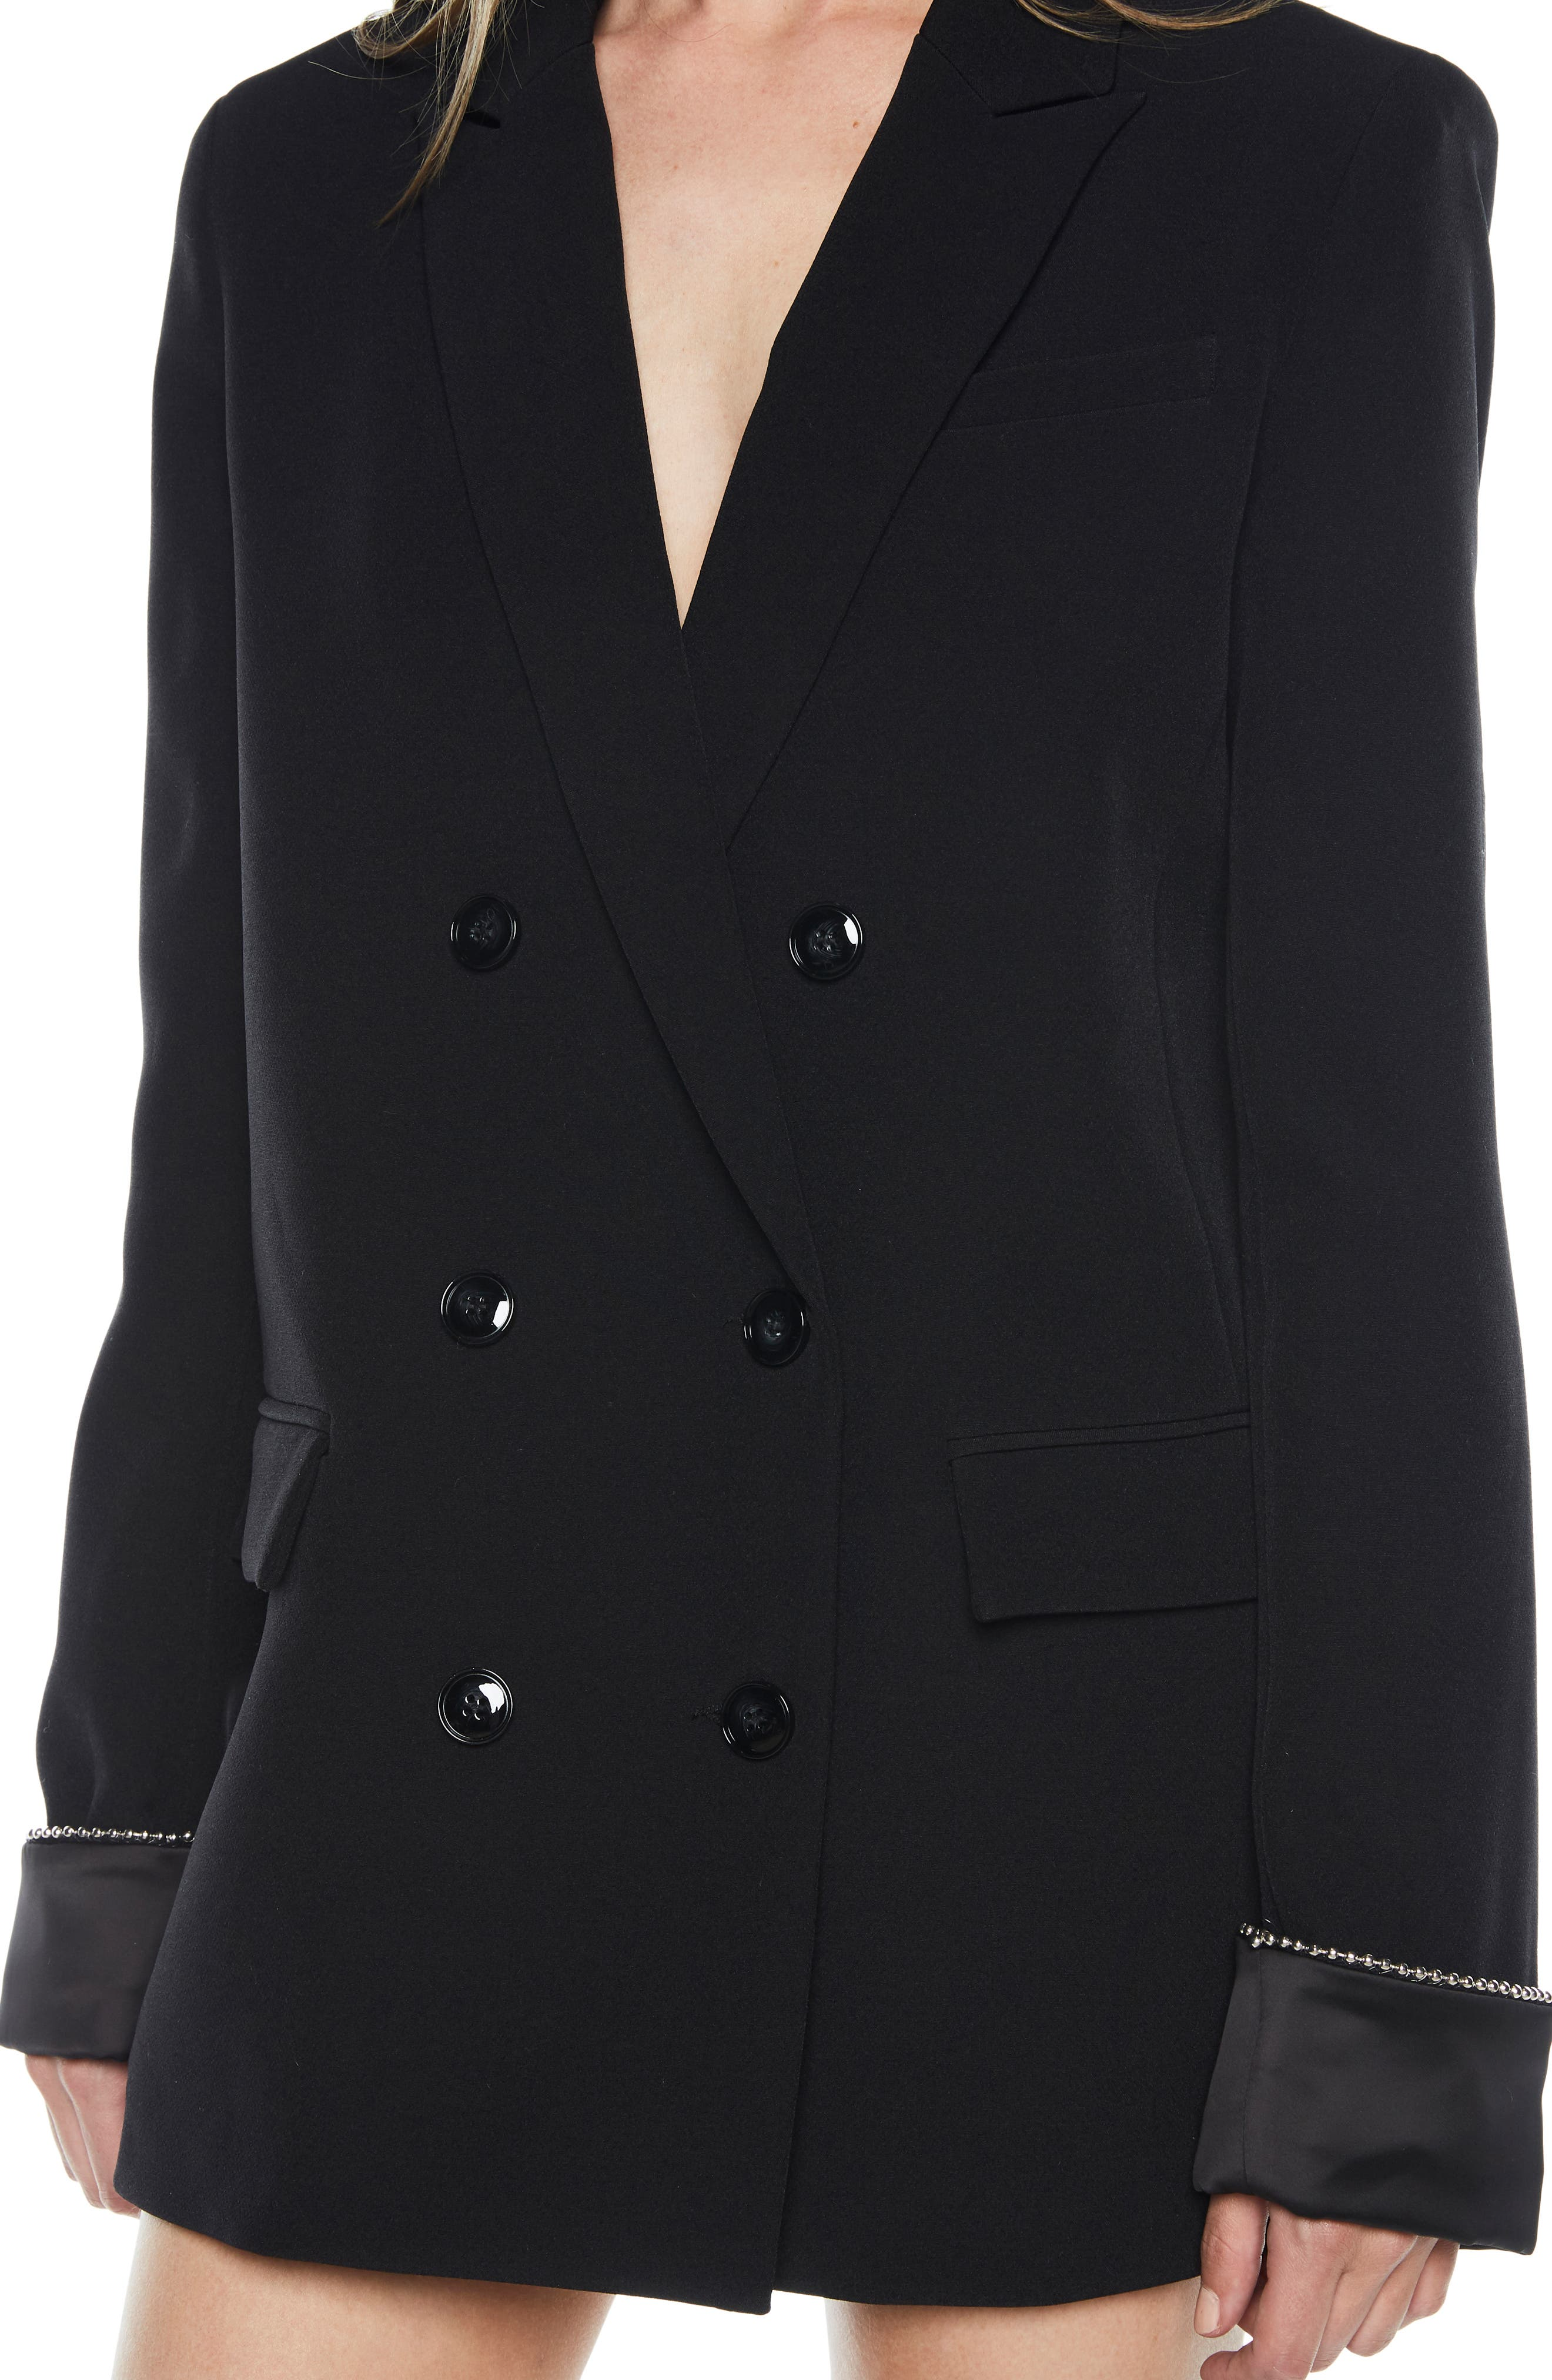 Sienna Double Breasted Jacket,                             Alternate thumbnail 4, color,                             BLACK